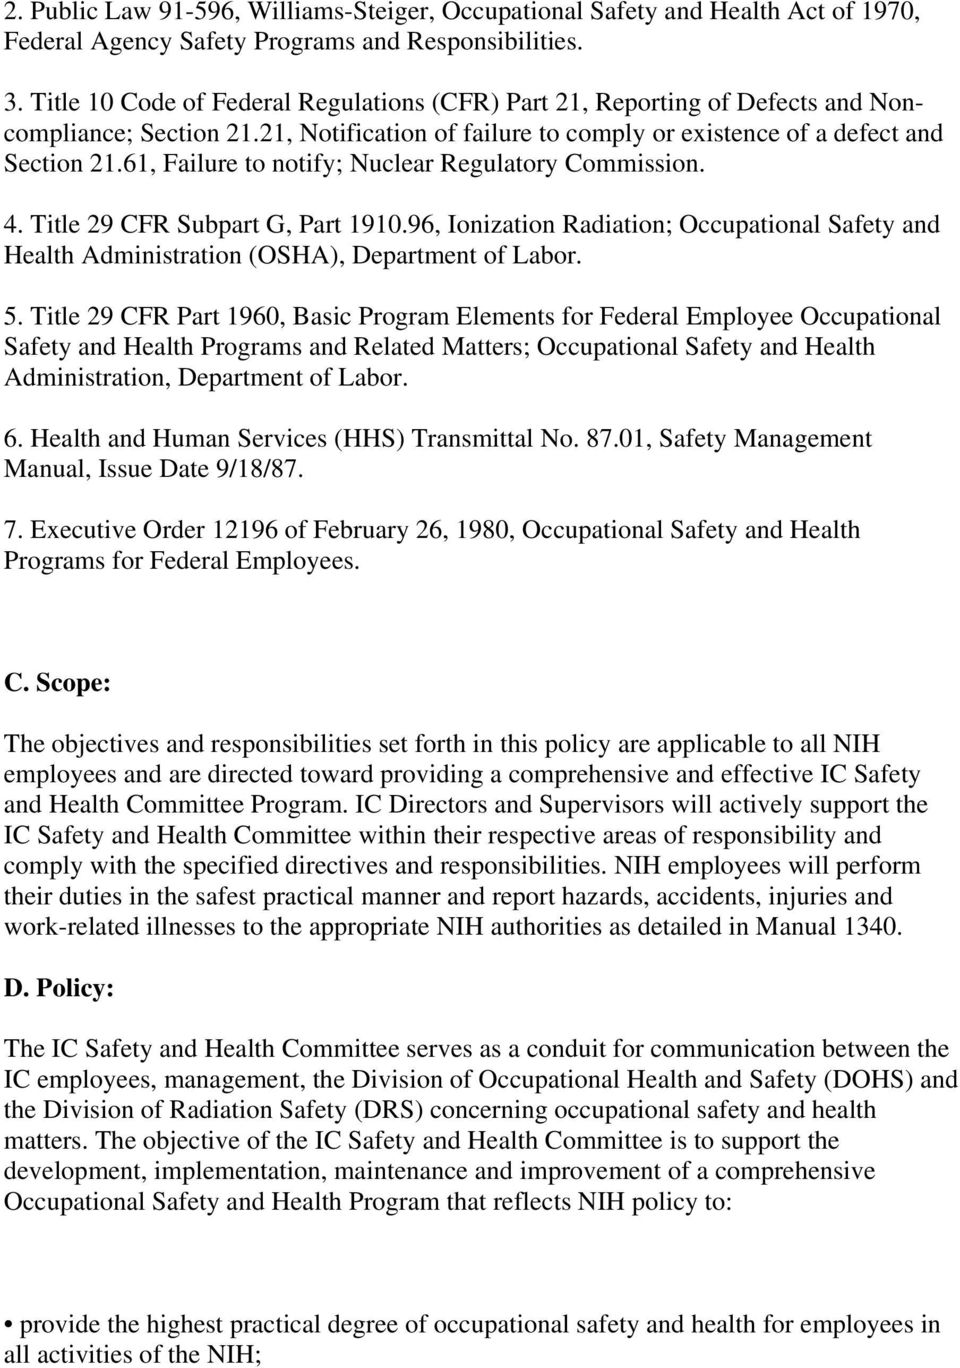 61, Failure to notify; Nuclear Regulatory Commission. 4. Title 29 CFR Subpart G, Part 1910.96, Ionization Radiation; Occupational Safety and Health Administration (OSHA), Department of Labor. 5.